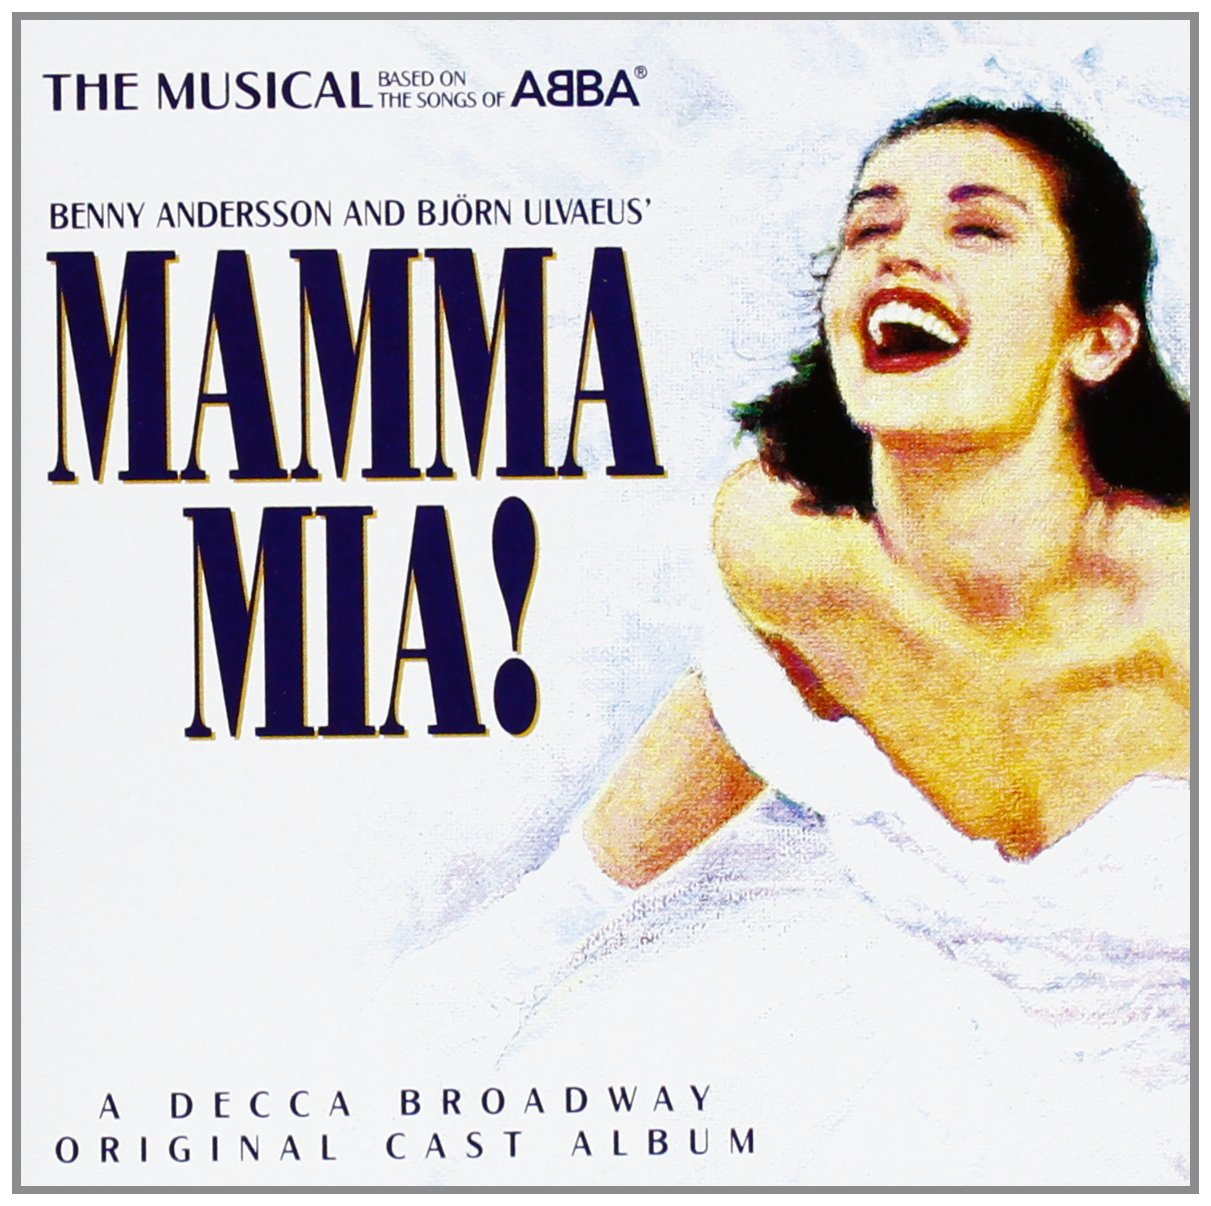 Mamma Mia! The Musical Based on the Songs of ABBA: Original Cast Recording (1999 London Cast) by Decca